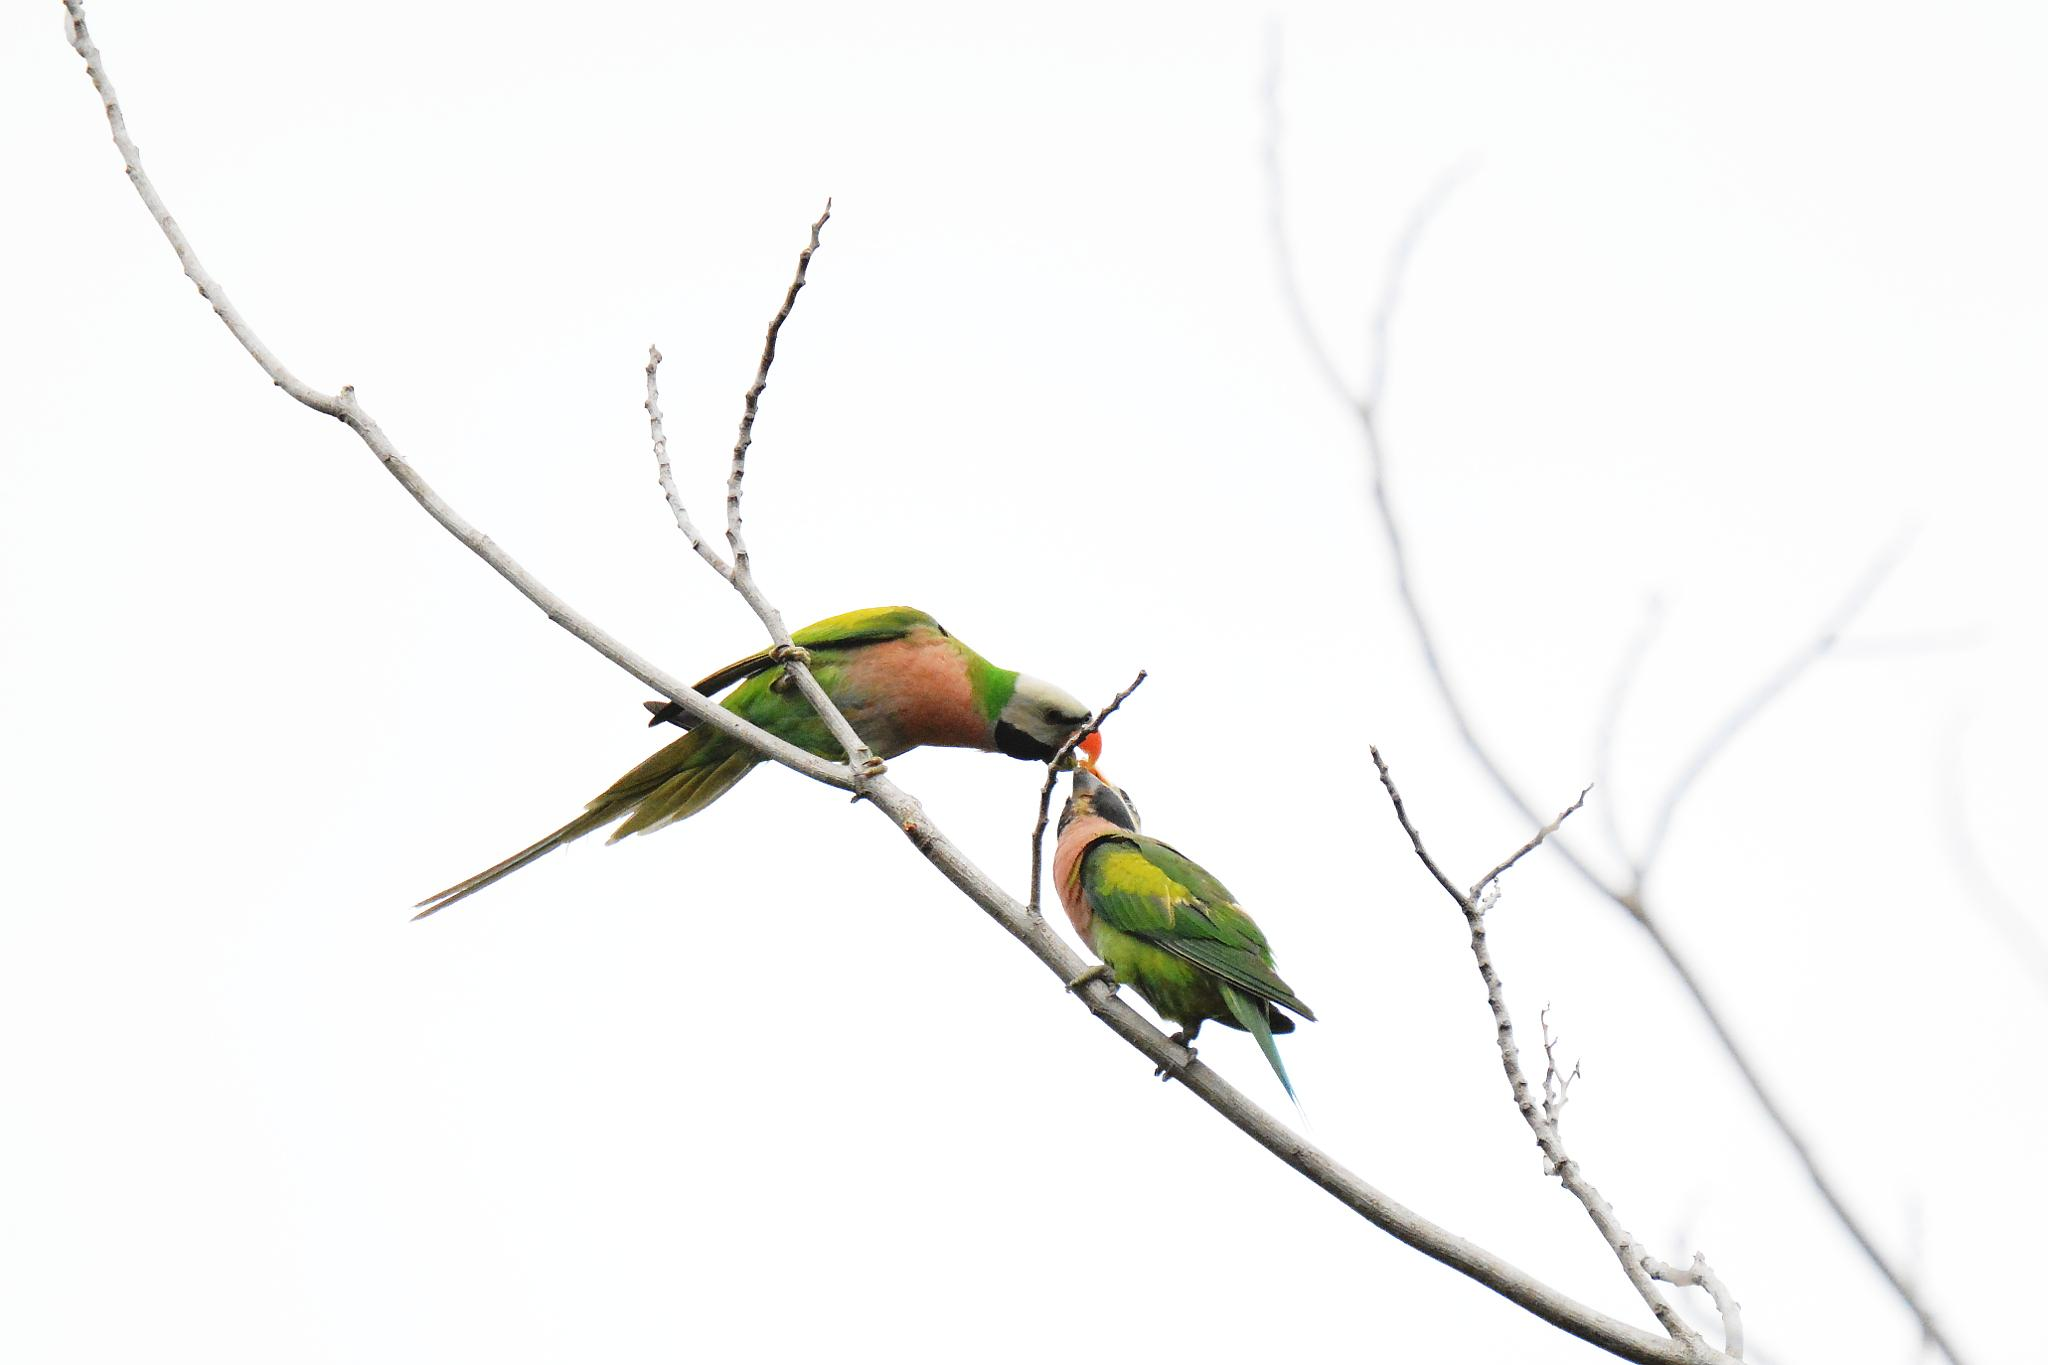 red-breasted parakeets (Psittacula alexandri) by Adrian Gopal